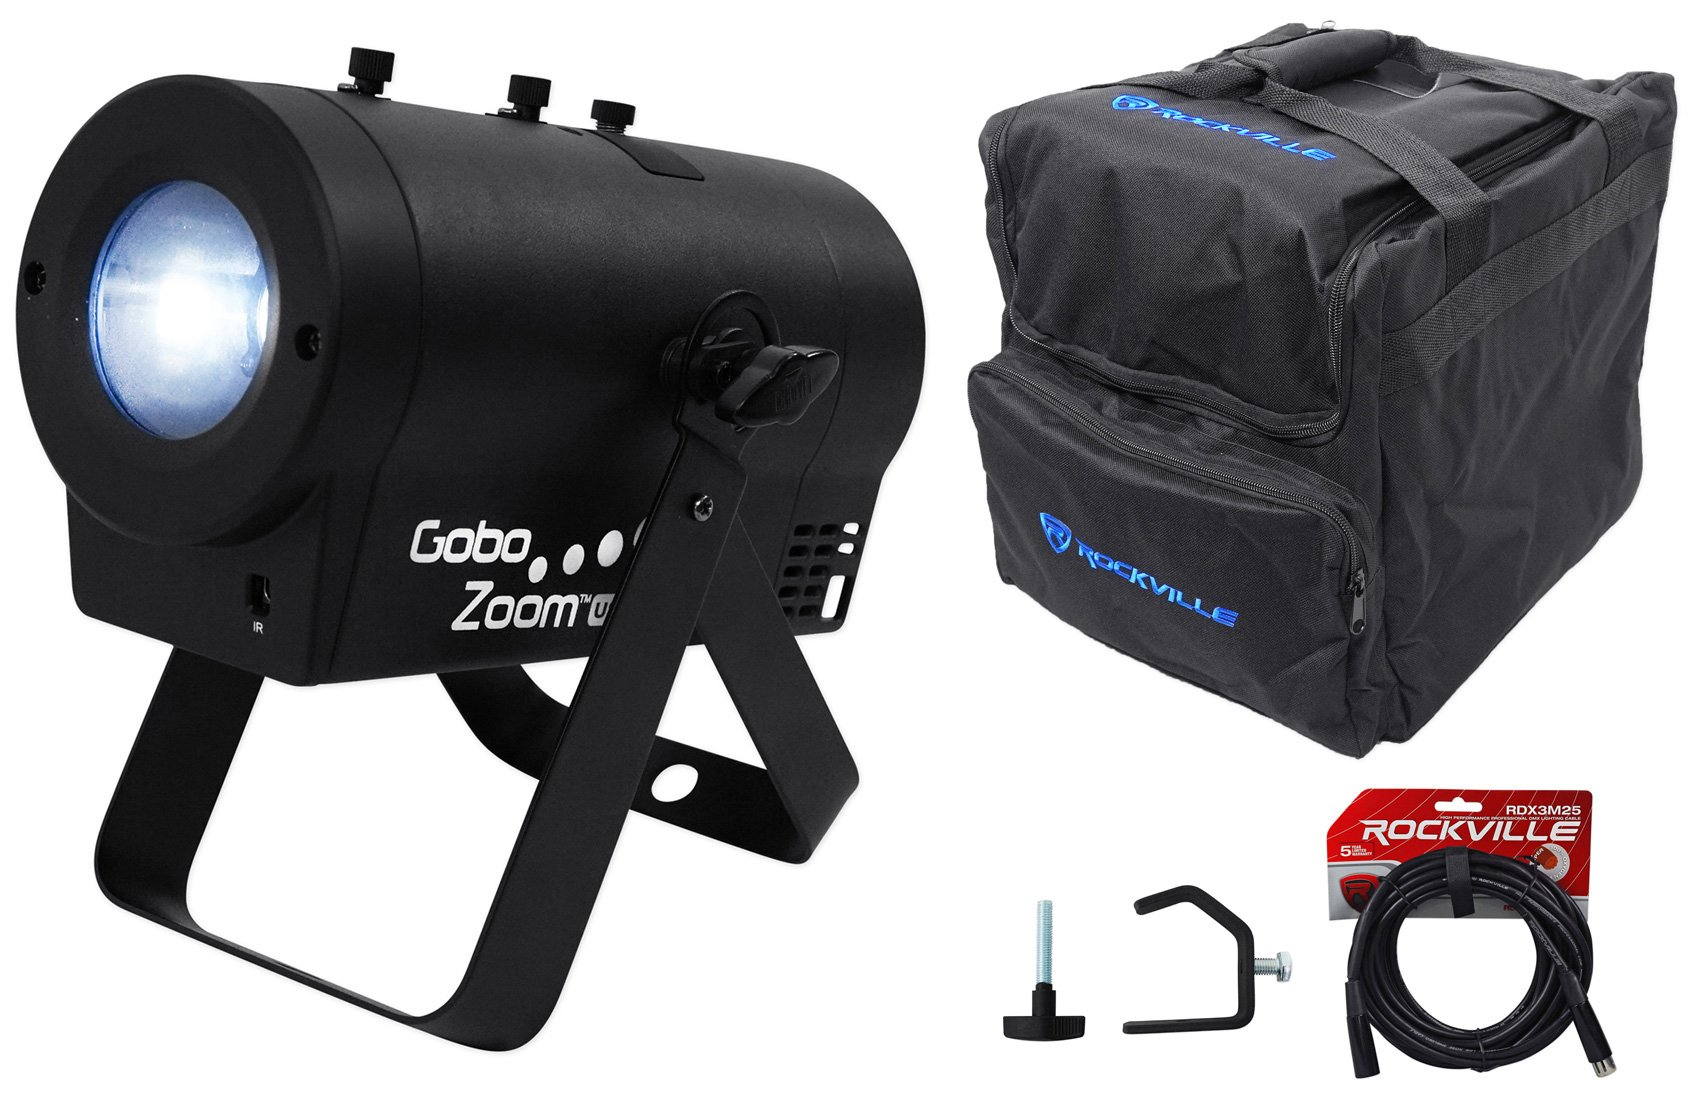 Chauvet DJ Gobo Zoom USB Custom Gobo Projector Light W/10 Gobos+Bag+Clamp+Cable by Chauvet